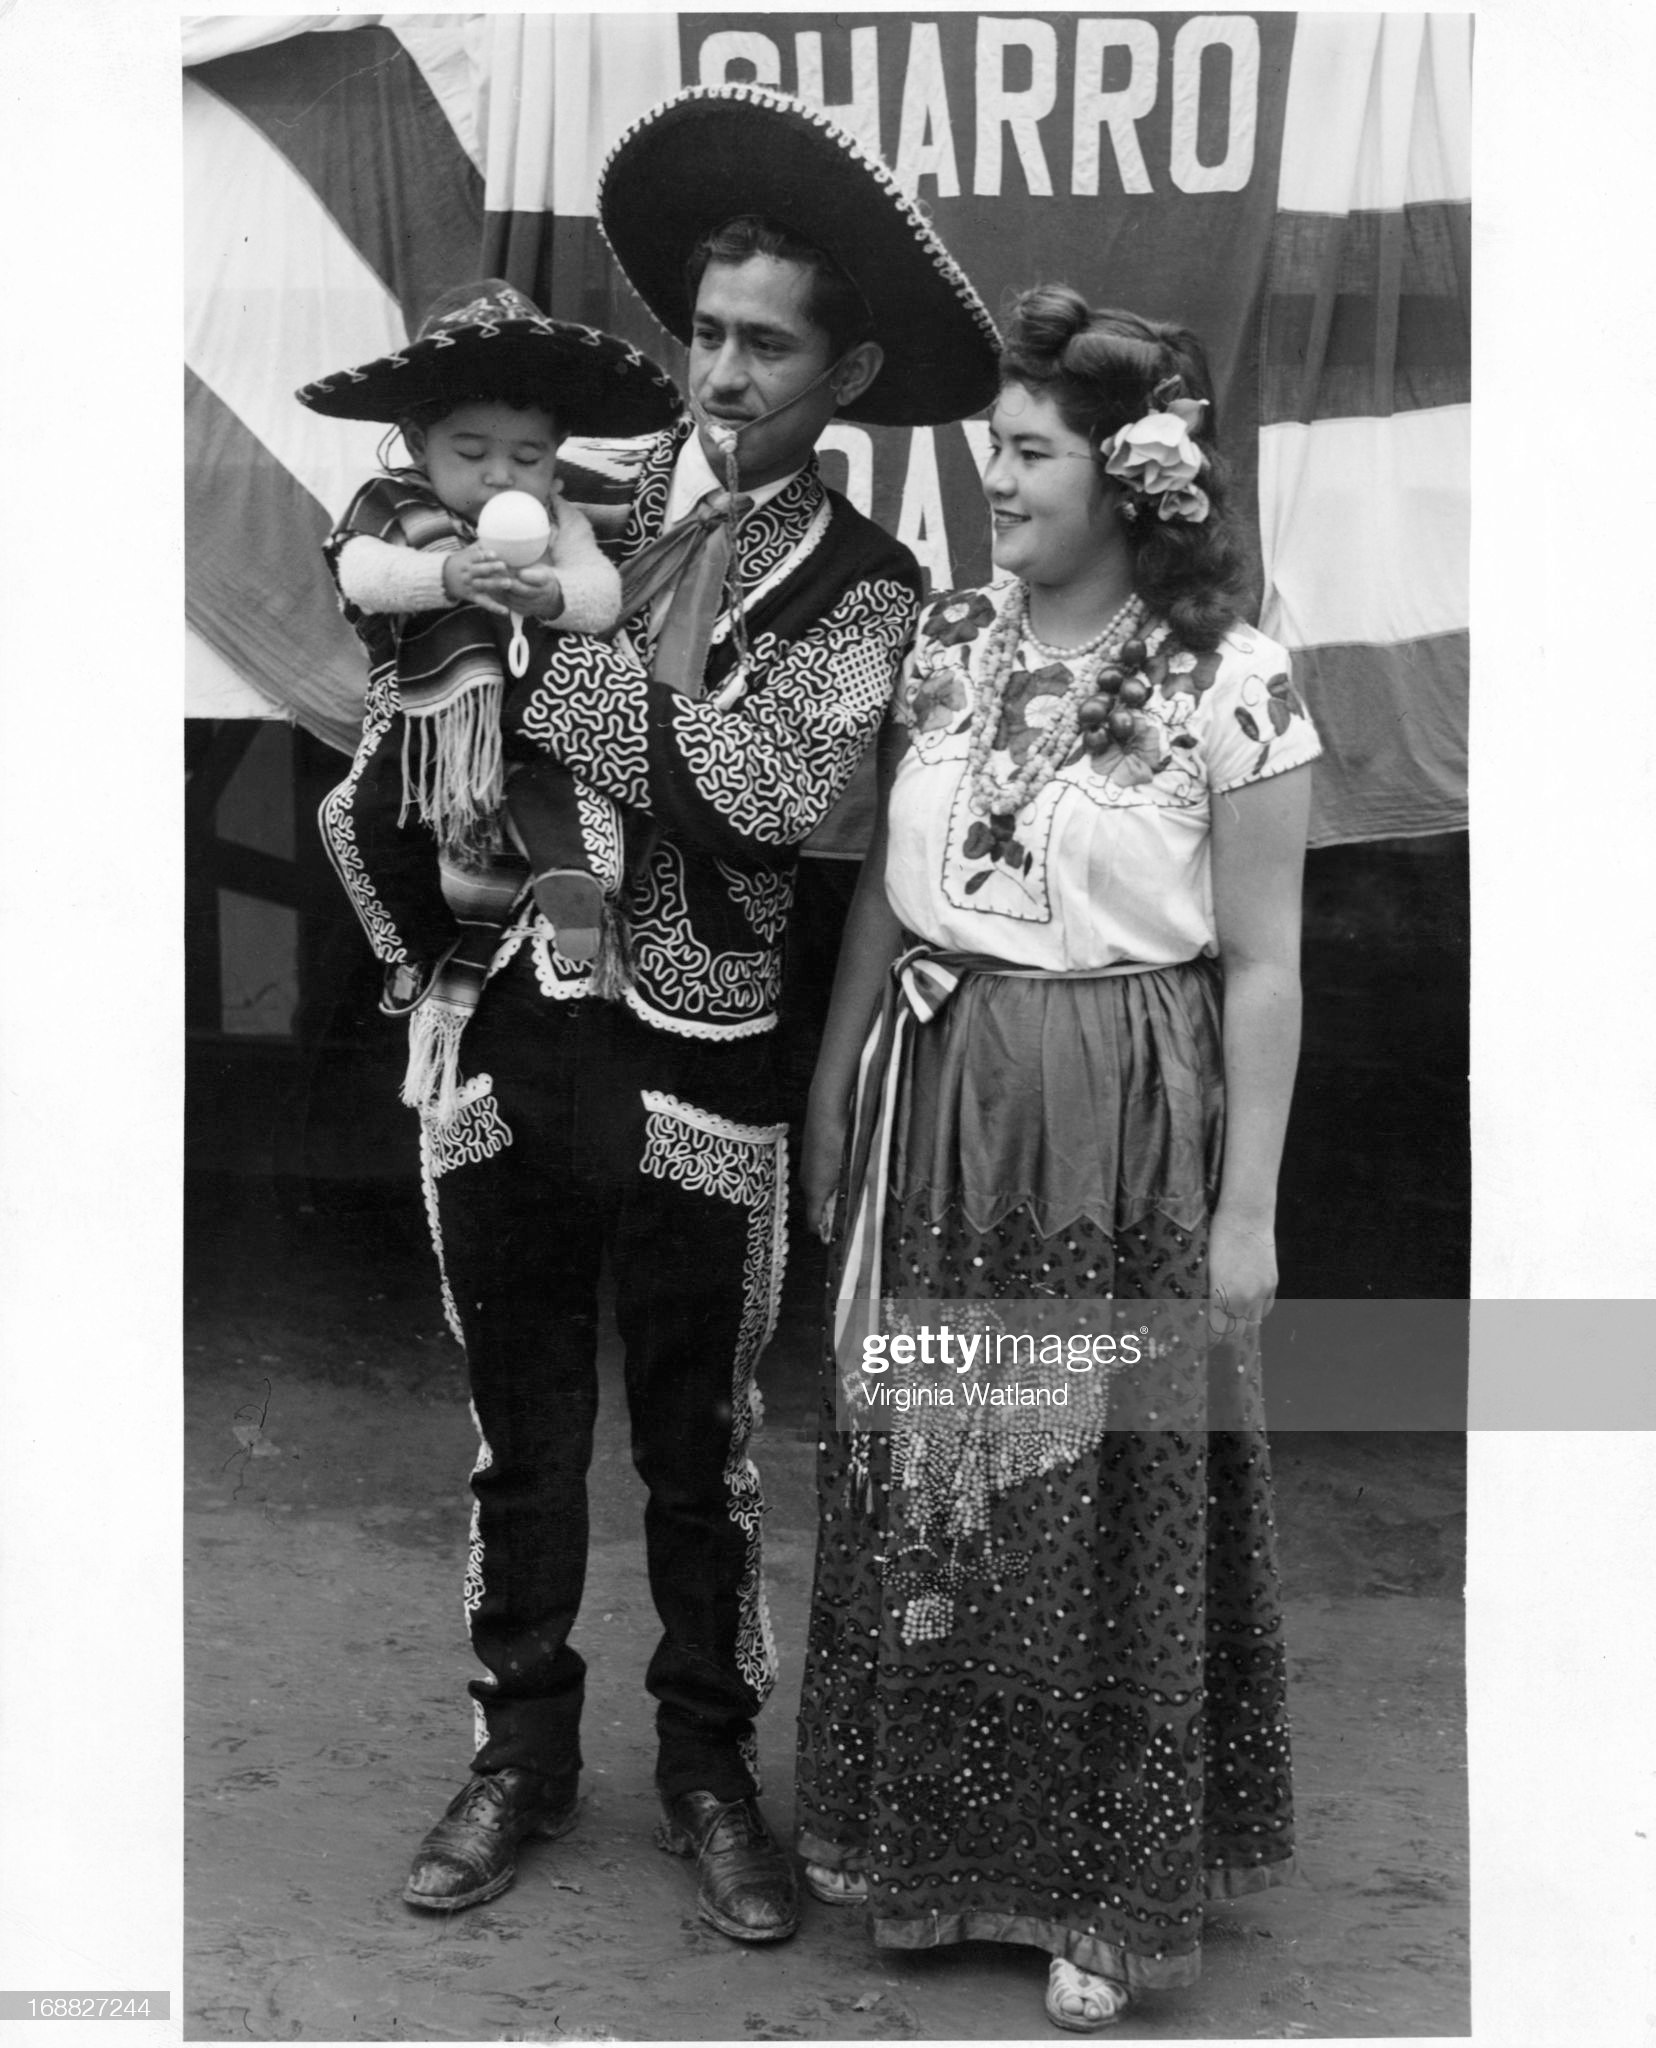 Non-Military Multimedia and photos - Page 2 Mexican-family-at-charro-days-in-brownsville-texas-1955-picture-id168827244?s=2048x2048